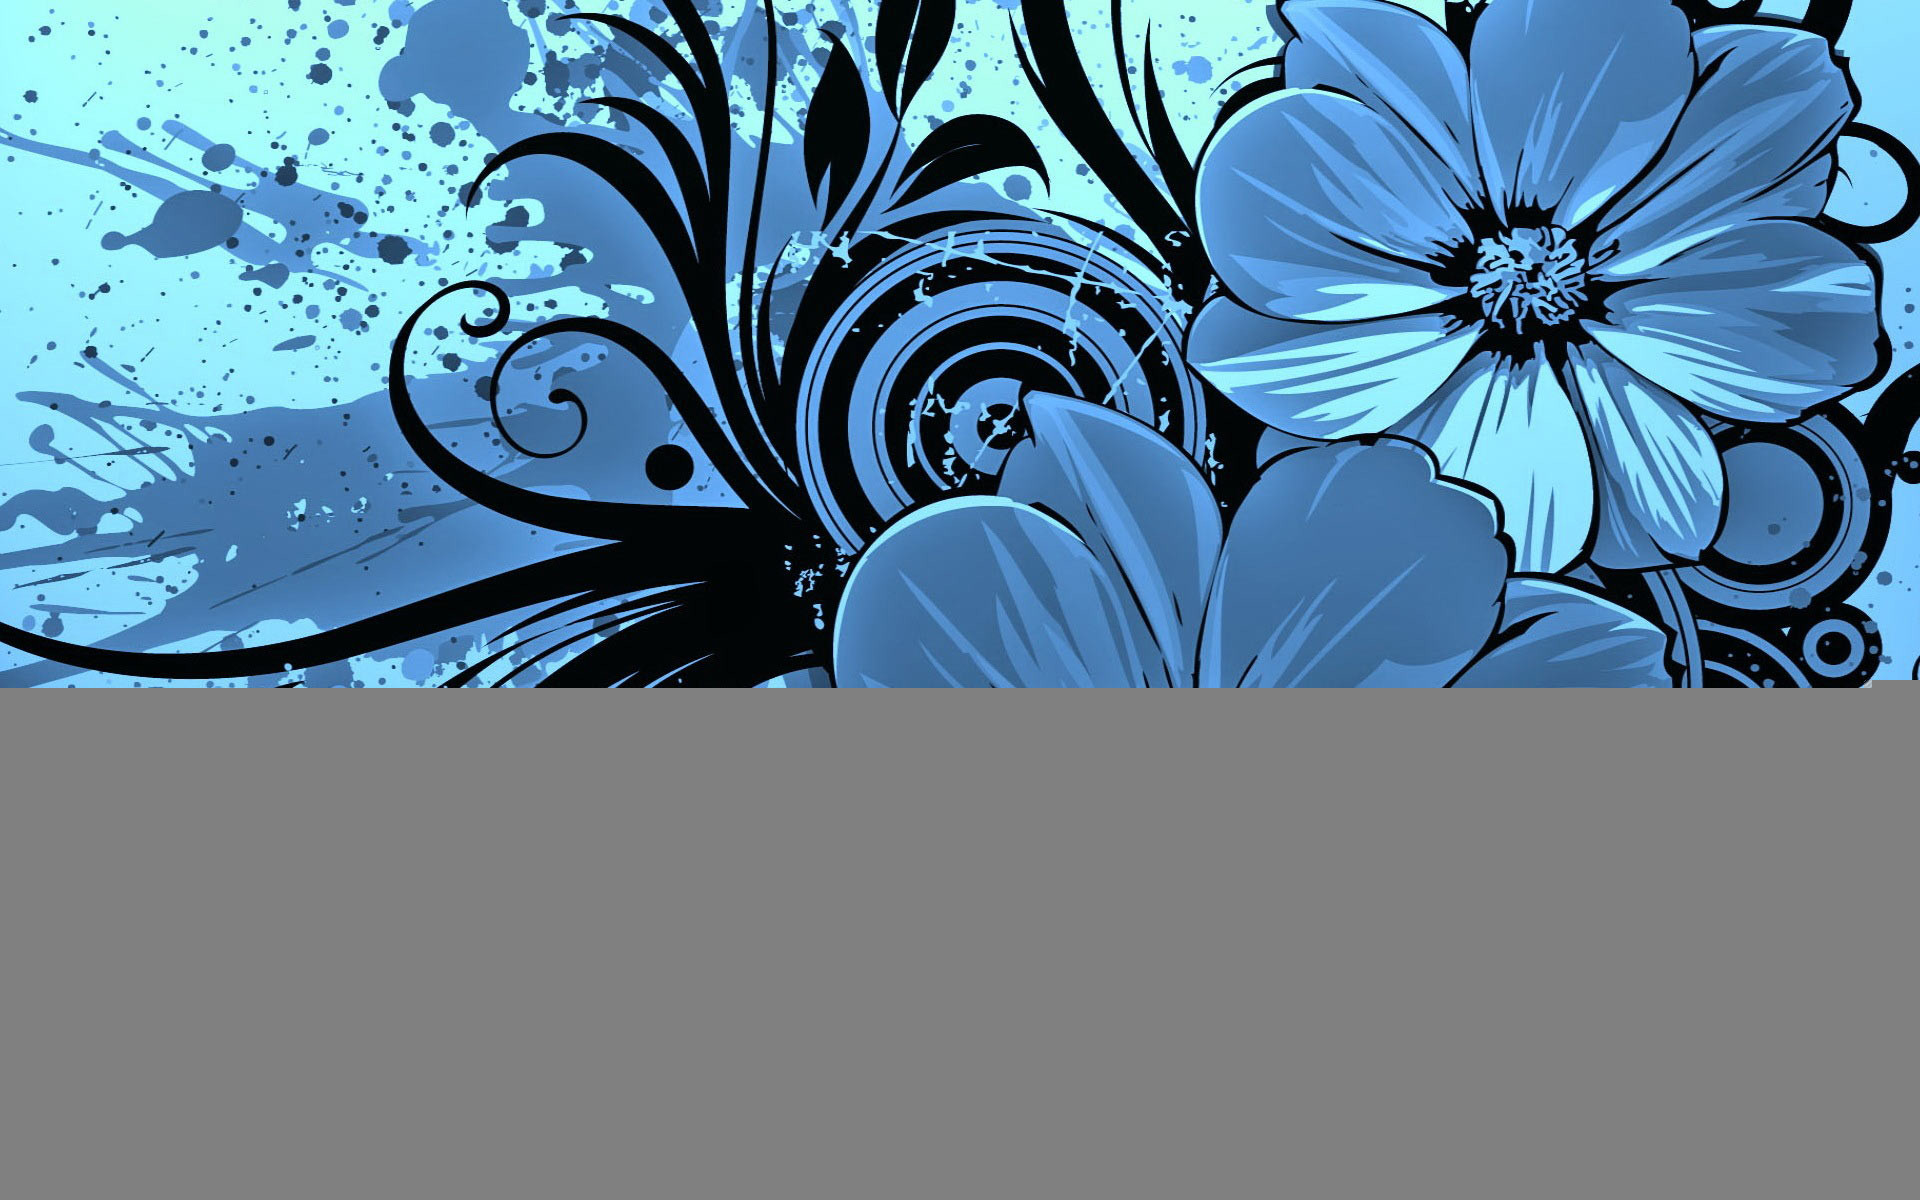 Res: 1920x1200, Blue Flower Wallpaper